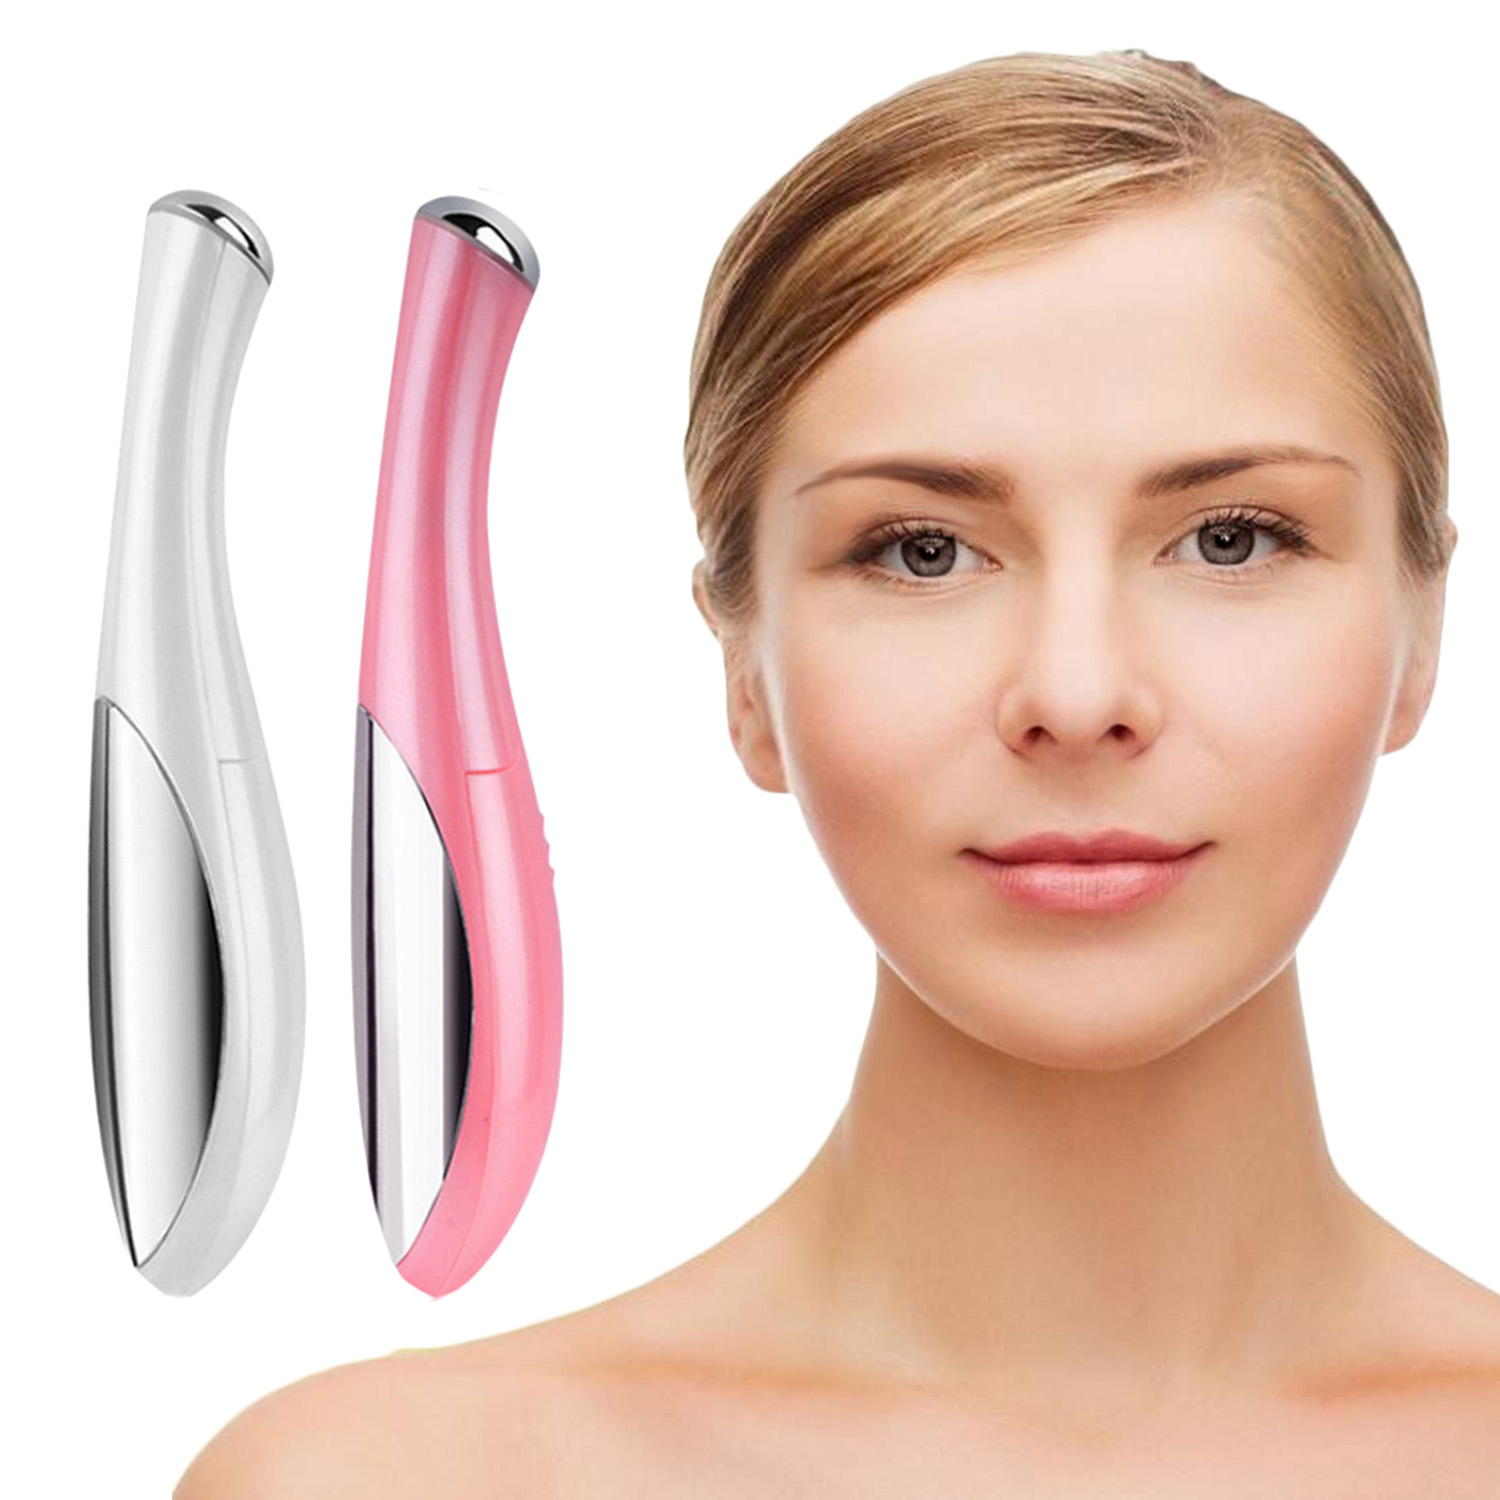 Pen-Type Electric Eye Facial Massager Wand Anti-Aging Skin Beauty Care Tool Supplies For Eye Wrinkle Puffiness Dark Circles